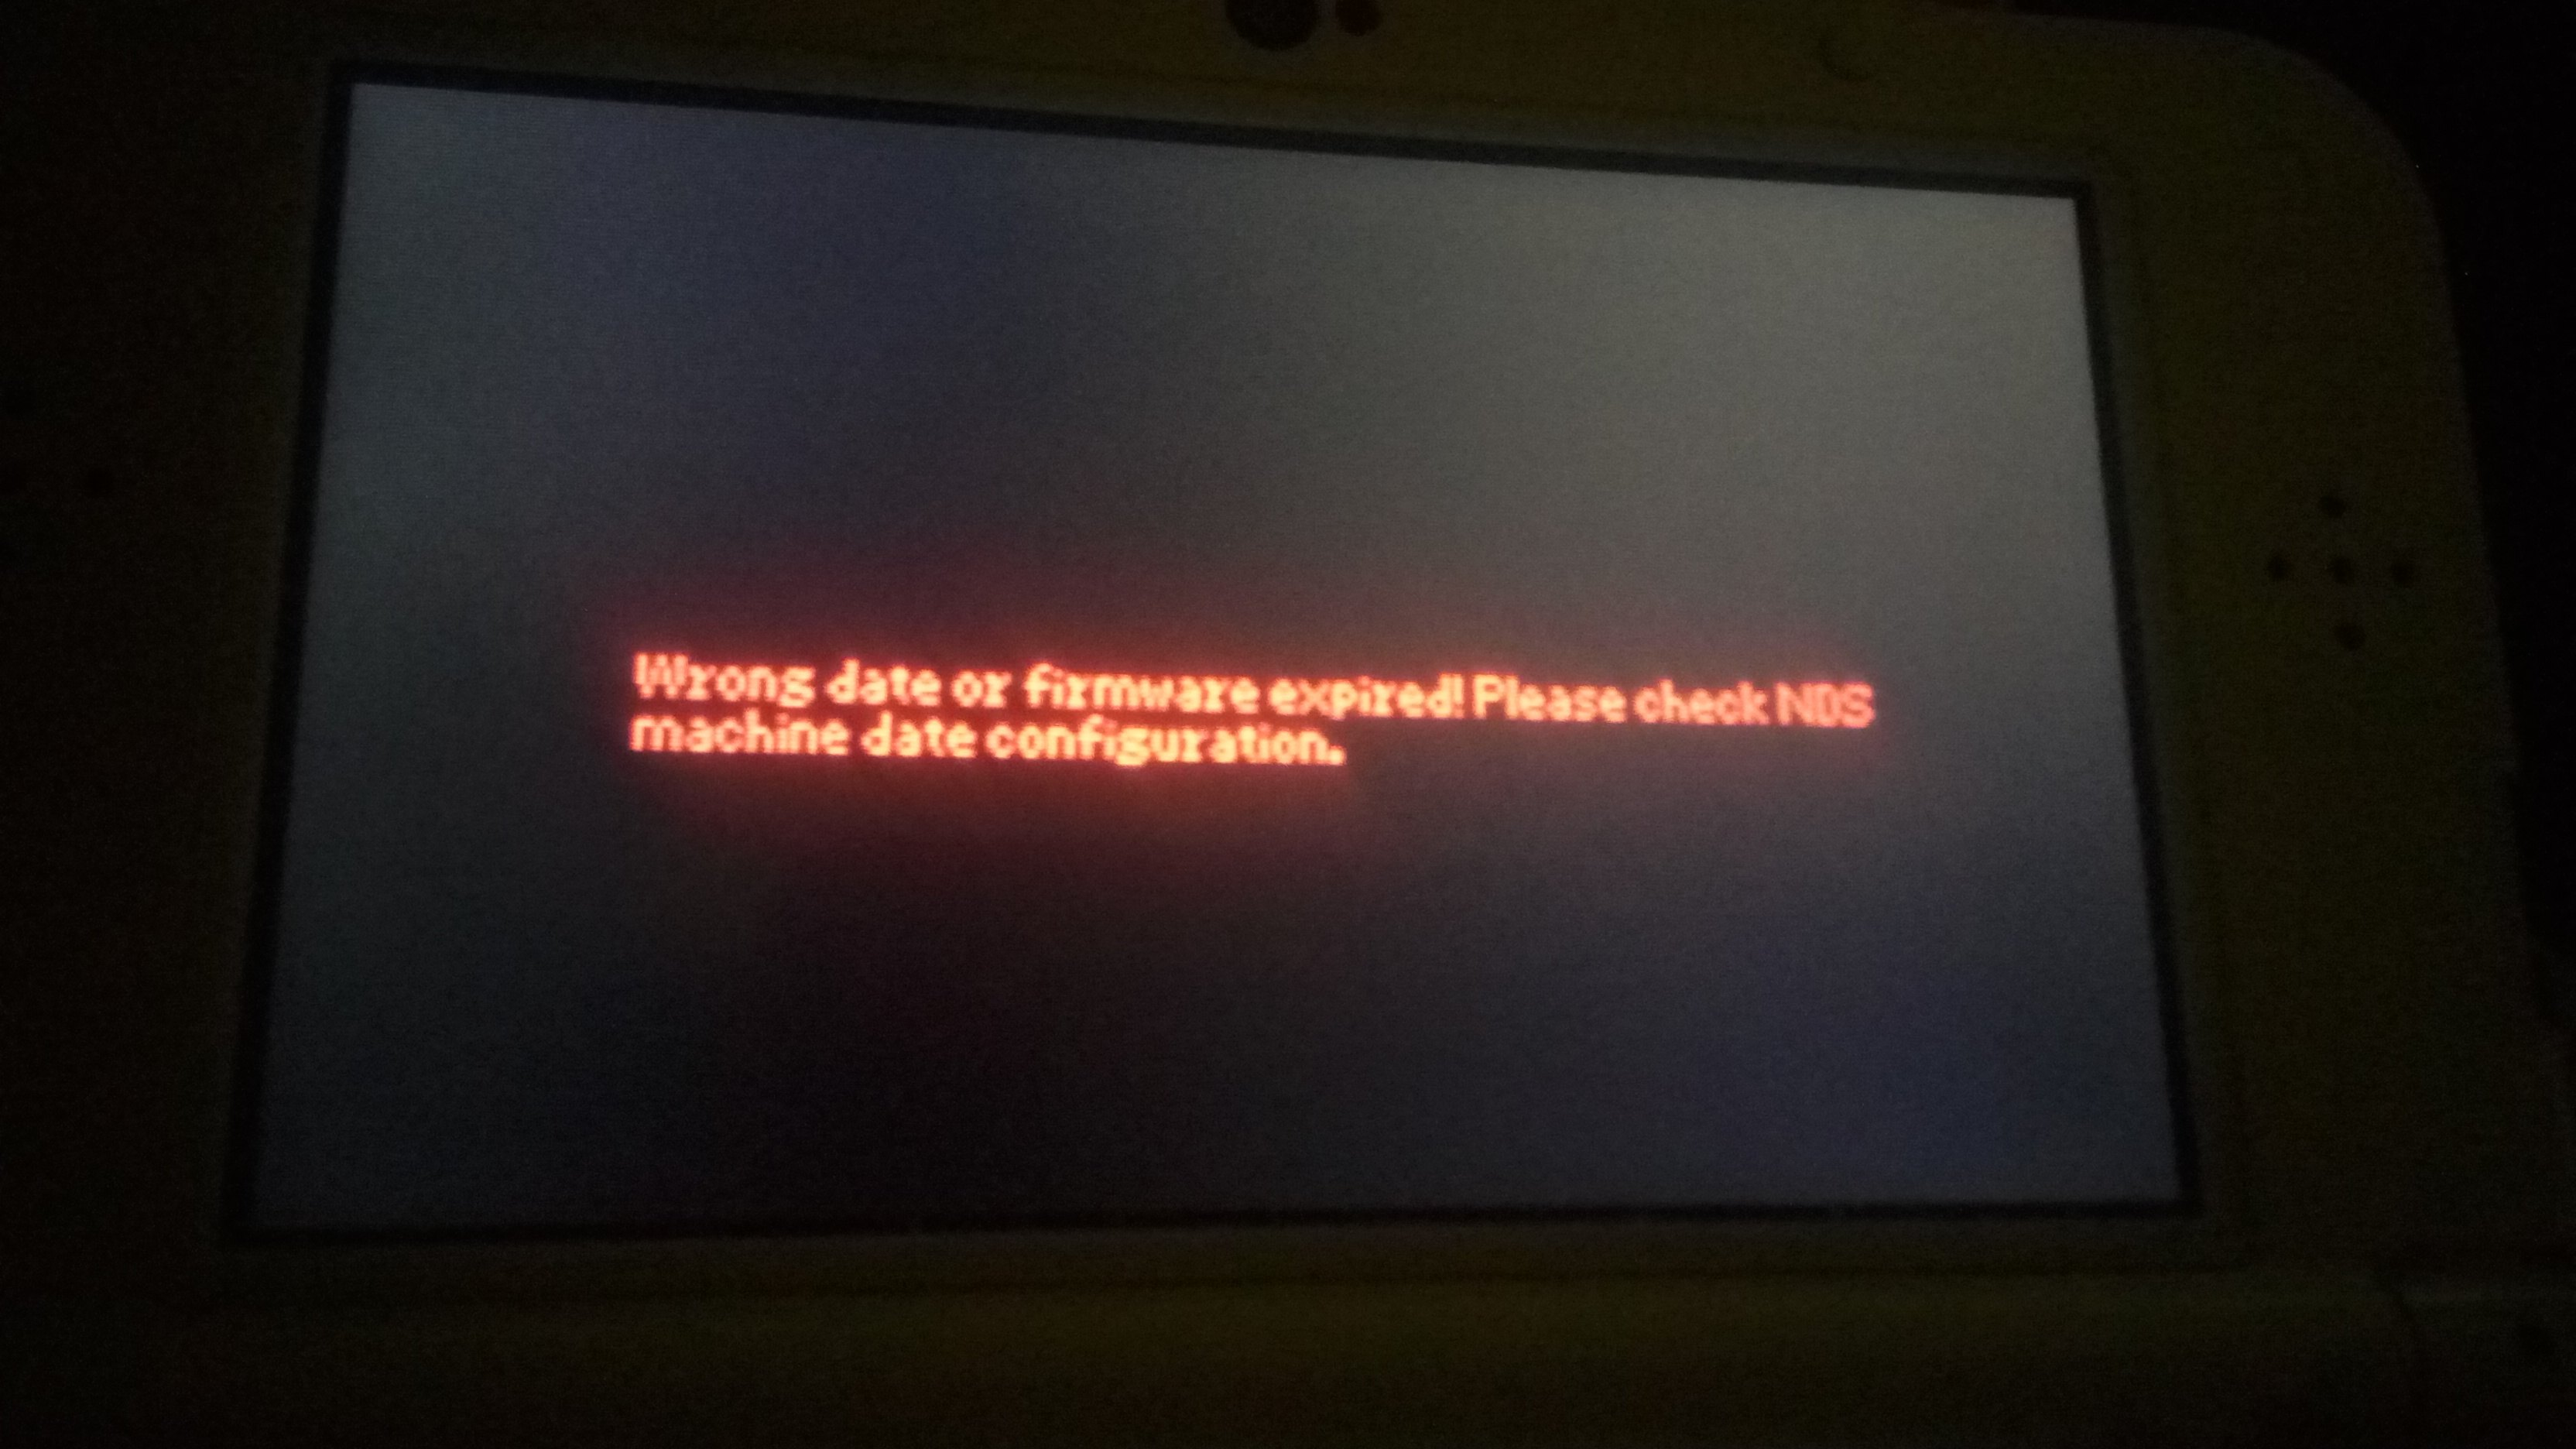 wrong date or firmware expired nds r4i